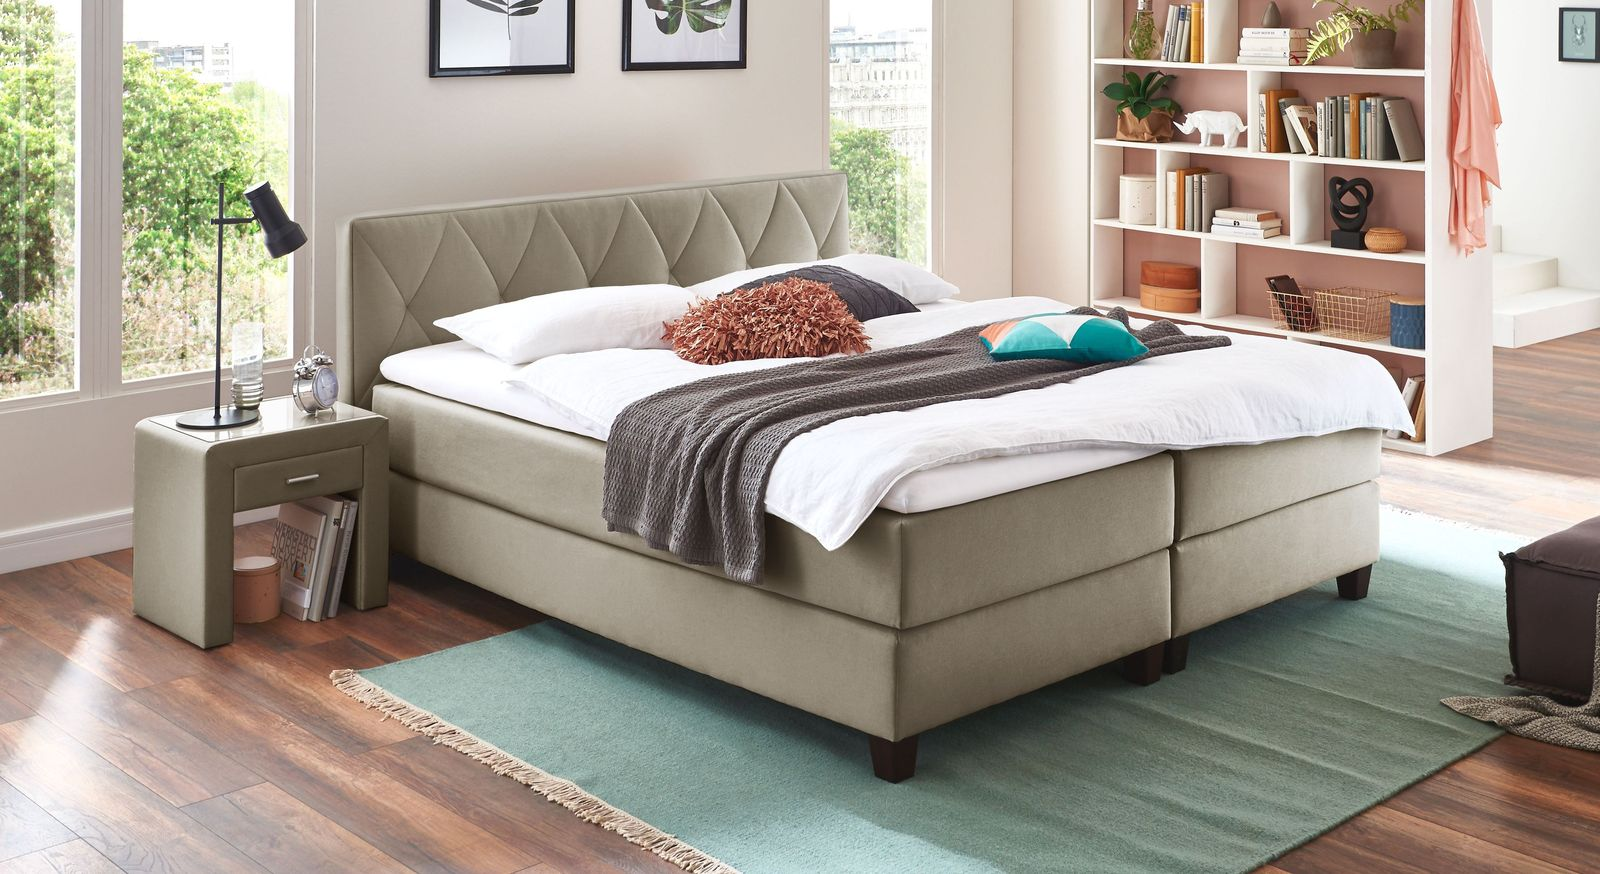 Stoff-Boxspringbett Midway in neutralem Taupe